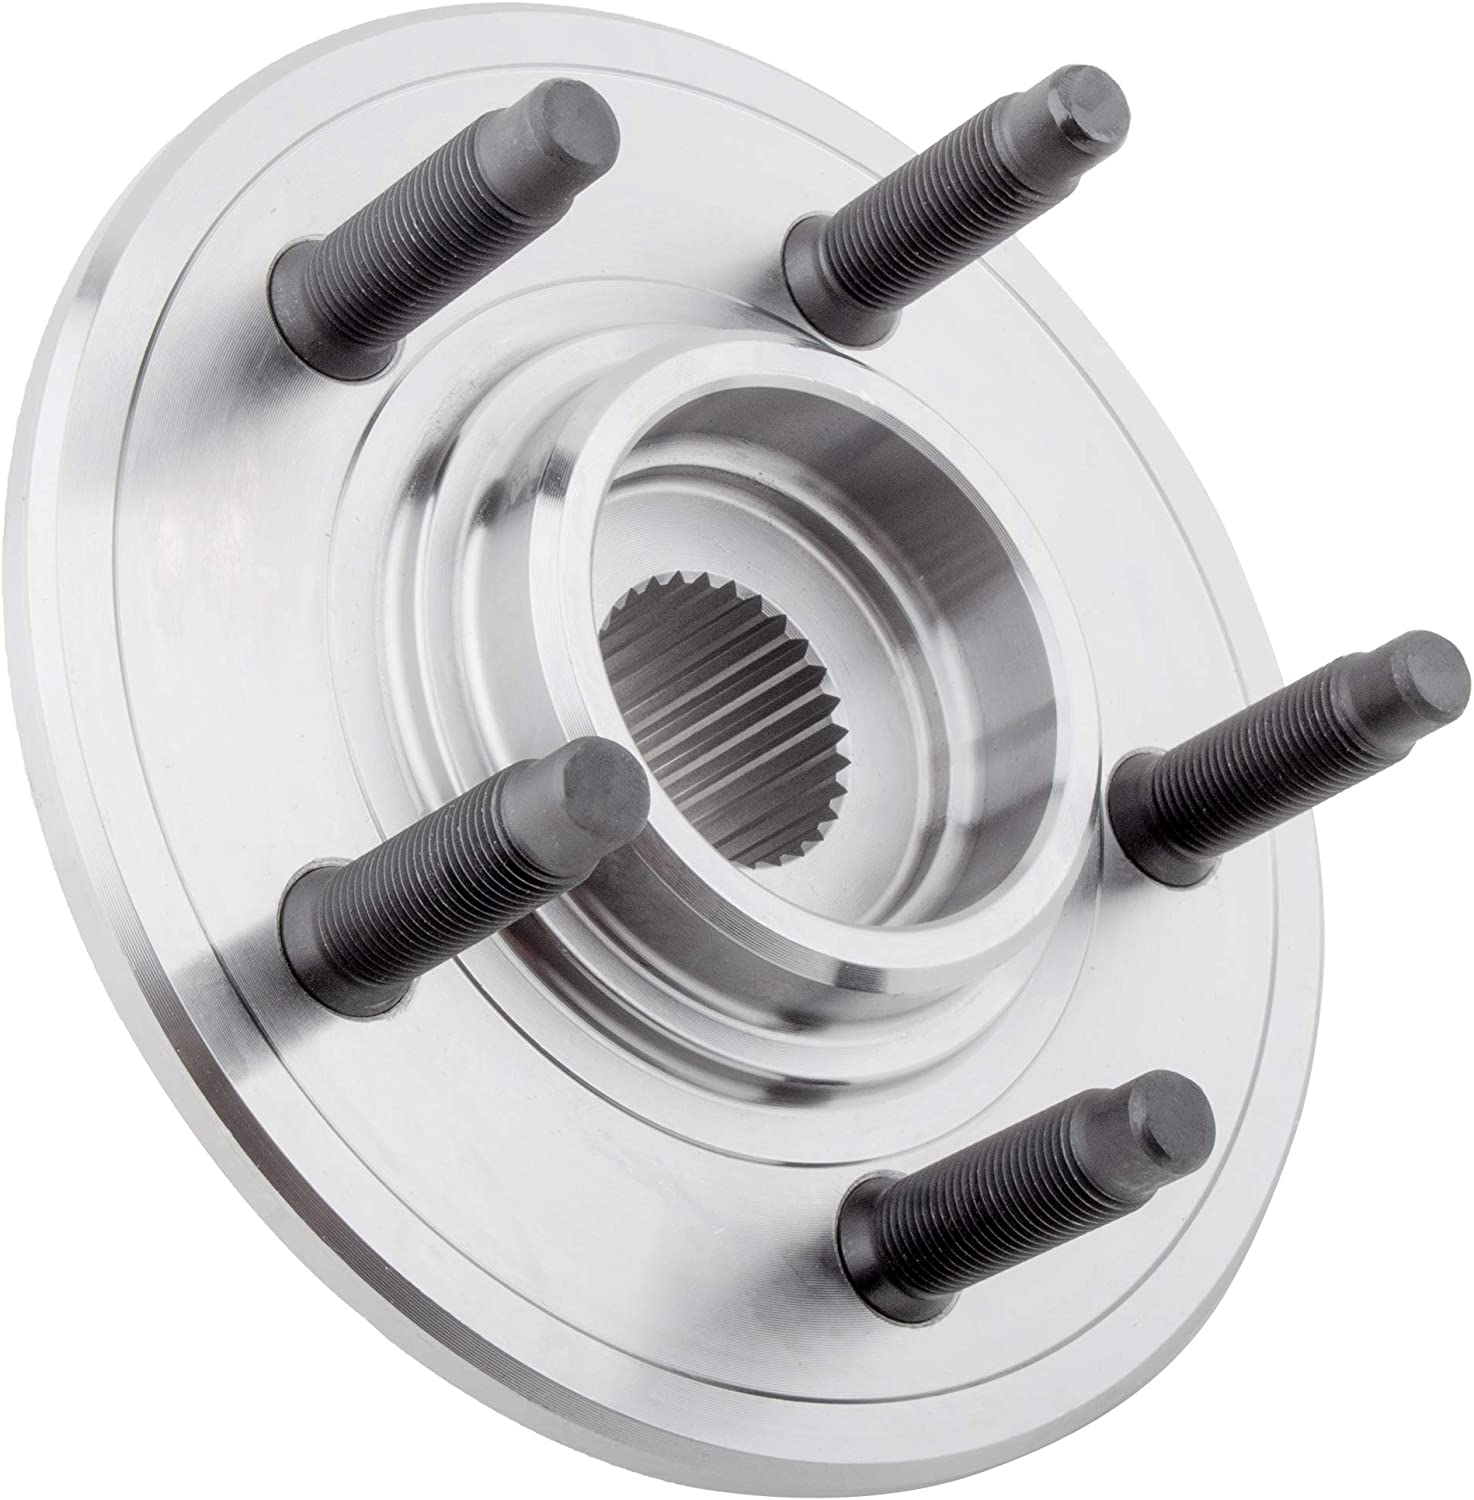 MYSMOT 521000 Rear Wheel Hub and Bearing Assembly 5 Lugs Without ABS For 02-10 Ford Explorer //07-10 Ford Explorer Sport Trac //02-10 Mercury Mountaineer //03-05 Lincoln Aviator